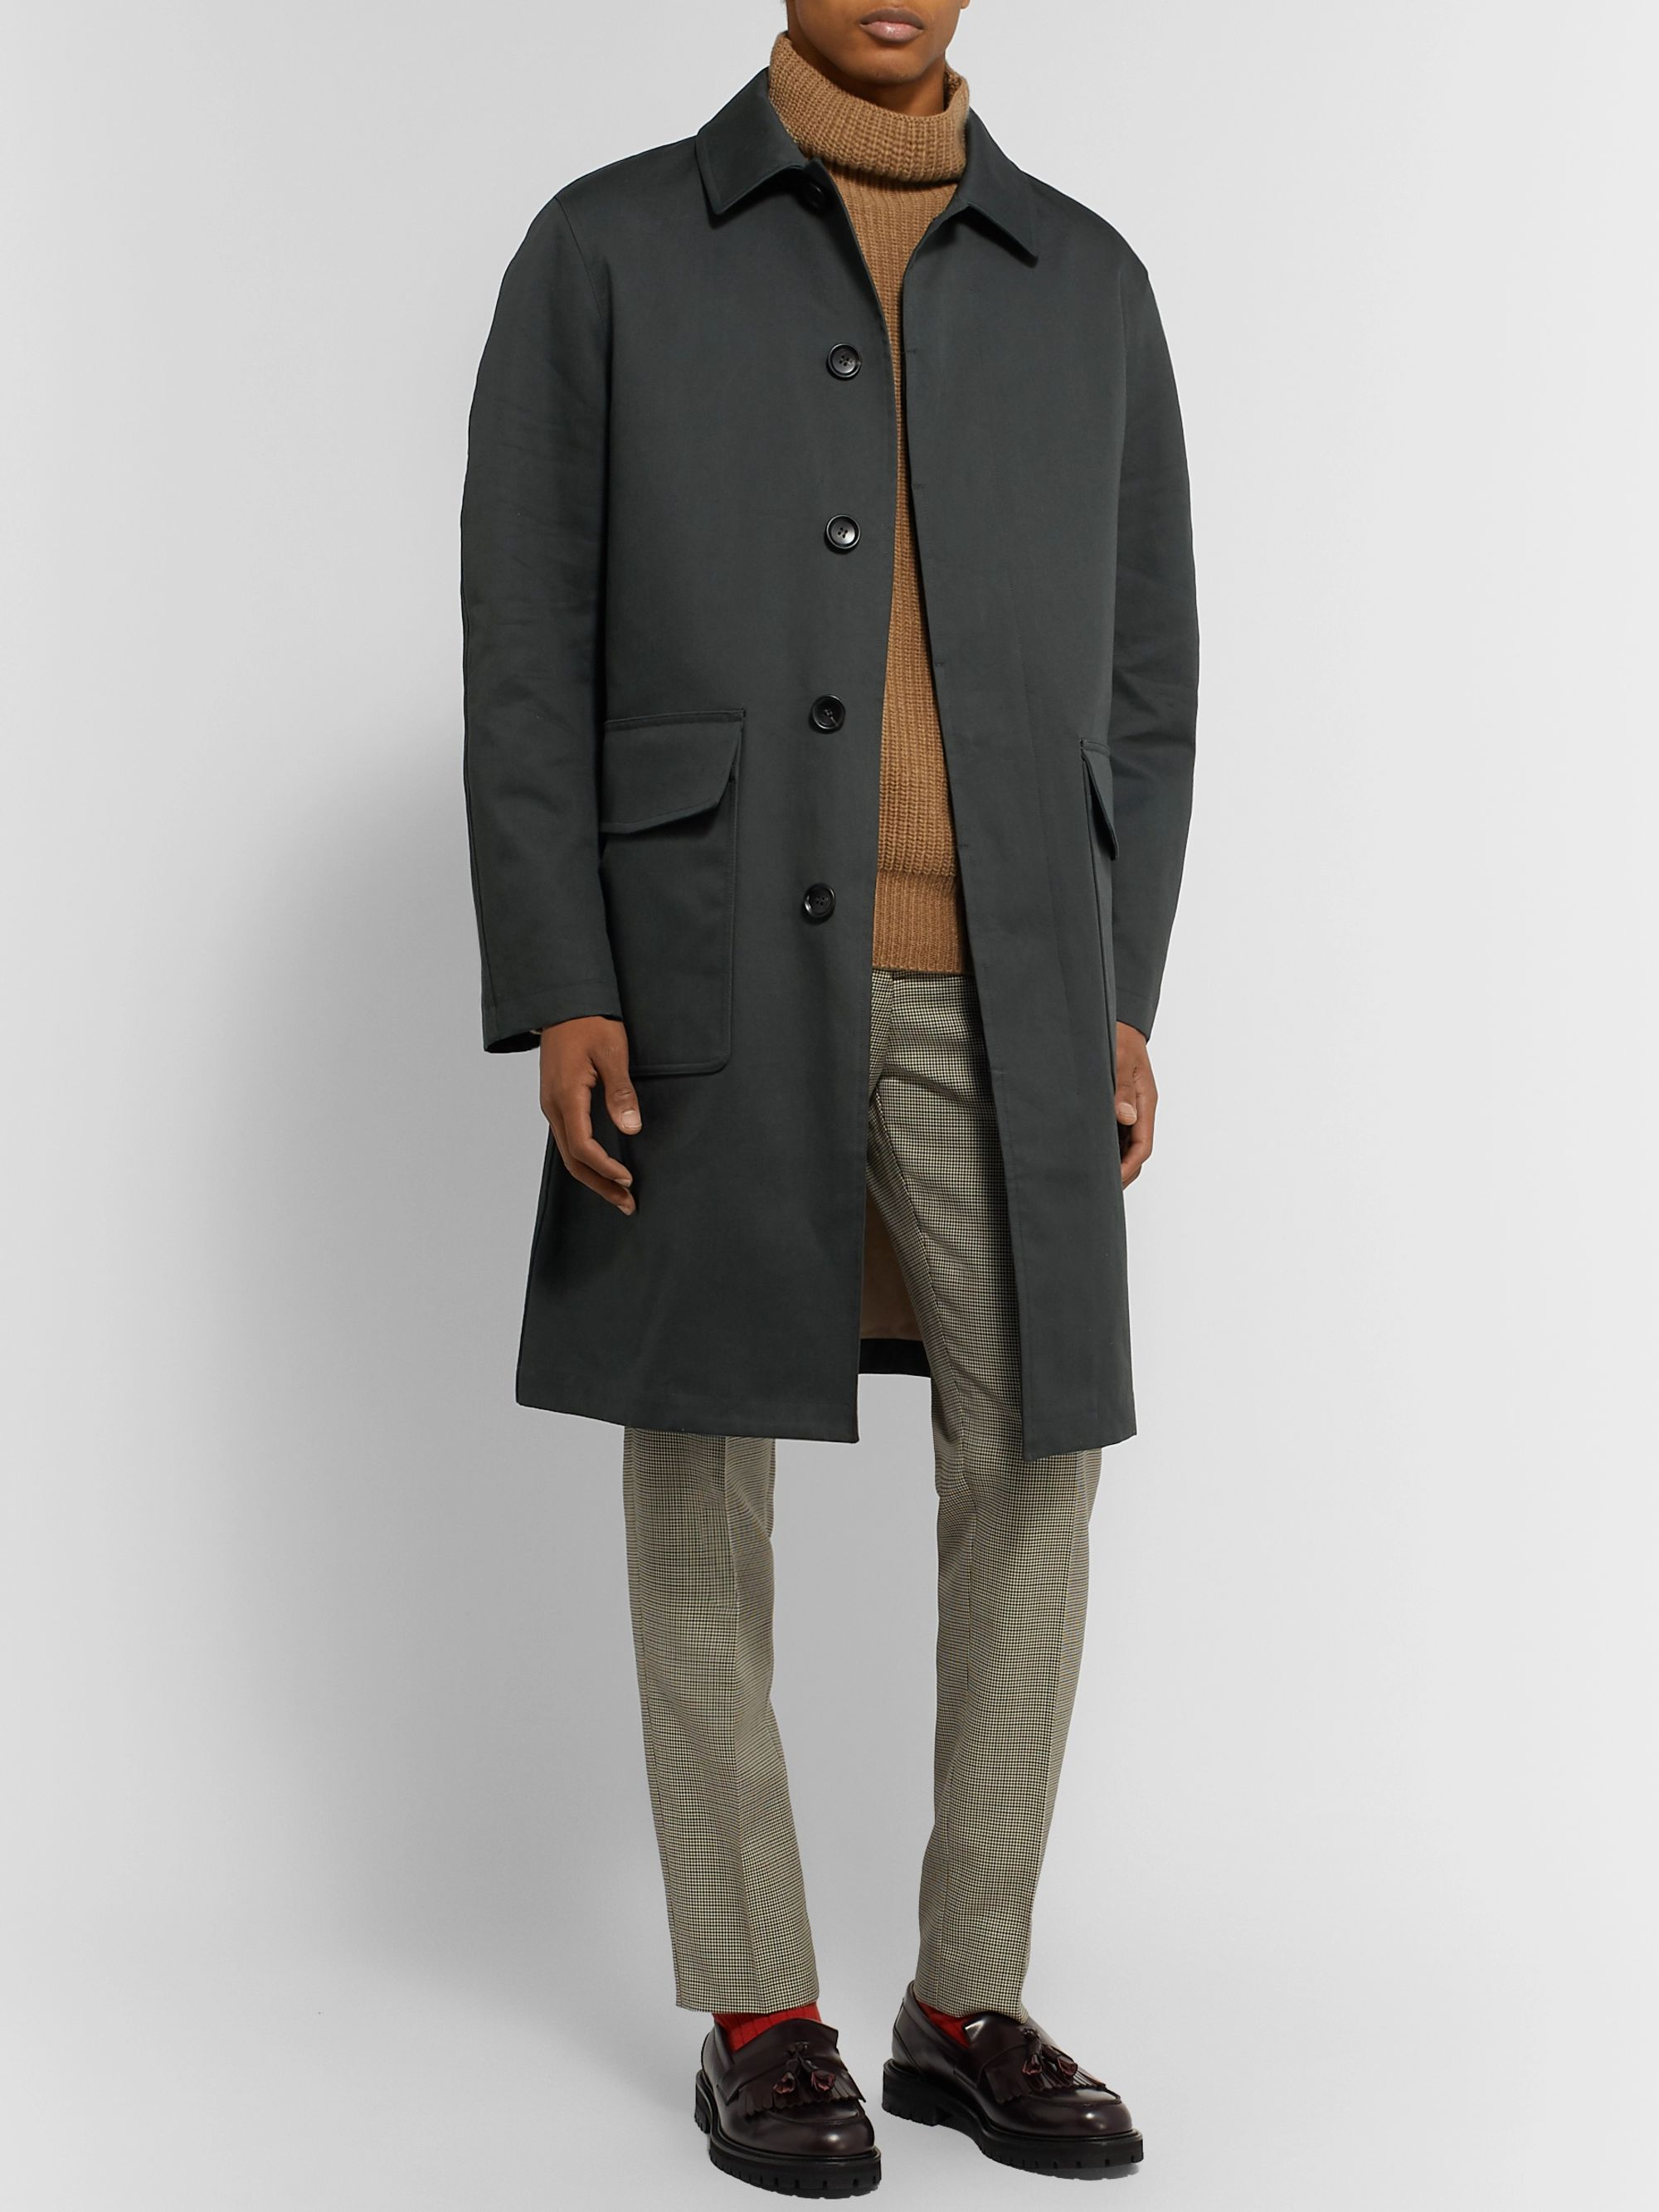 Mr P. Oversized Bonded Cotton-Blend Raincoat